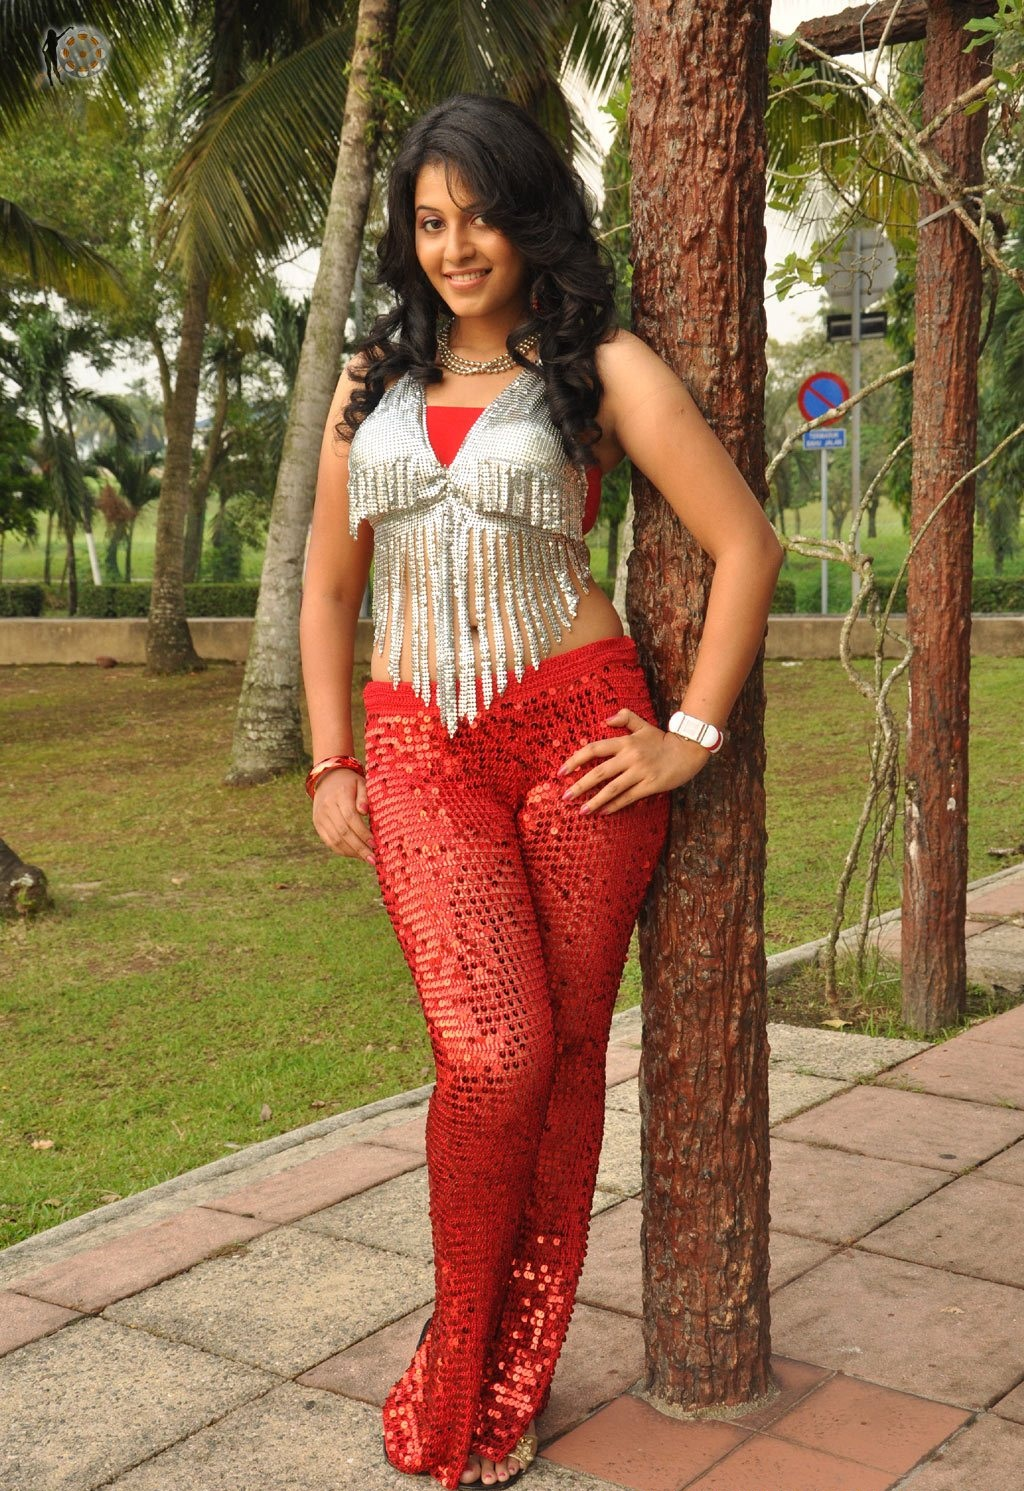 Cute Sneha Wallpapers 22 Anjali Hot Oops Moment Hq Pictures Bikini Images